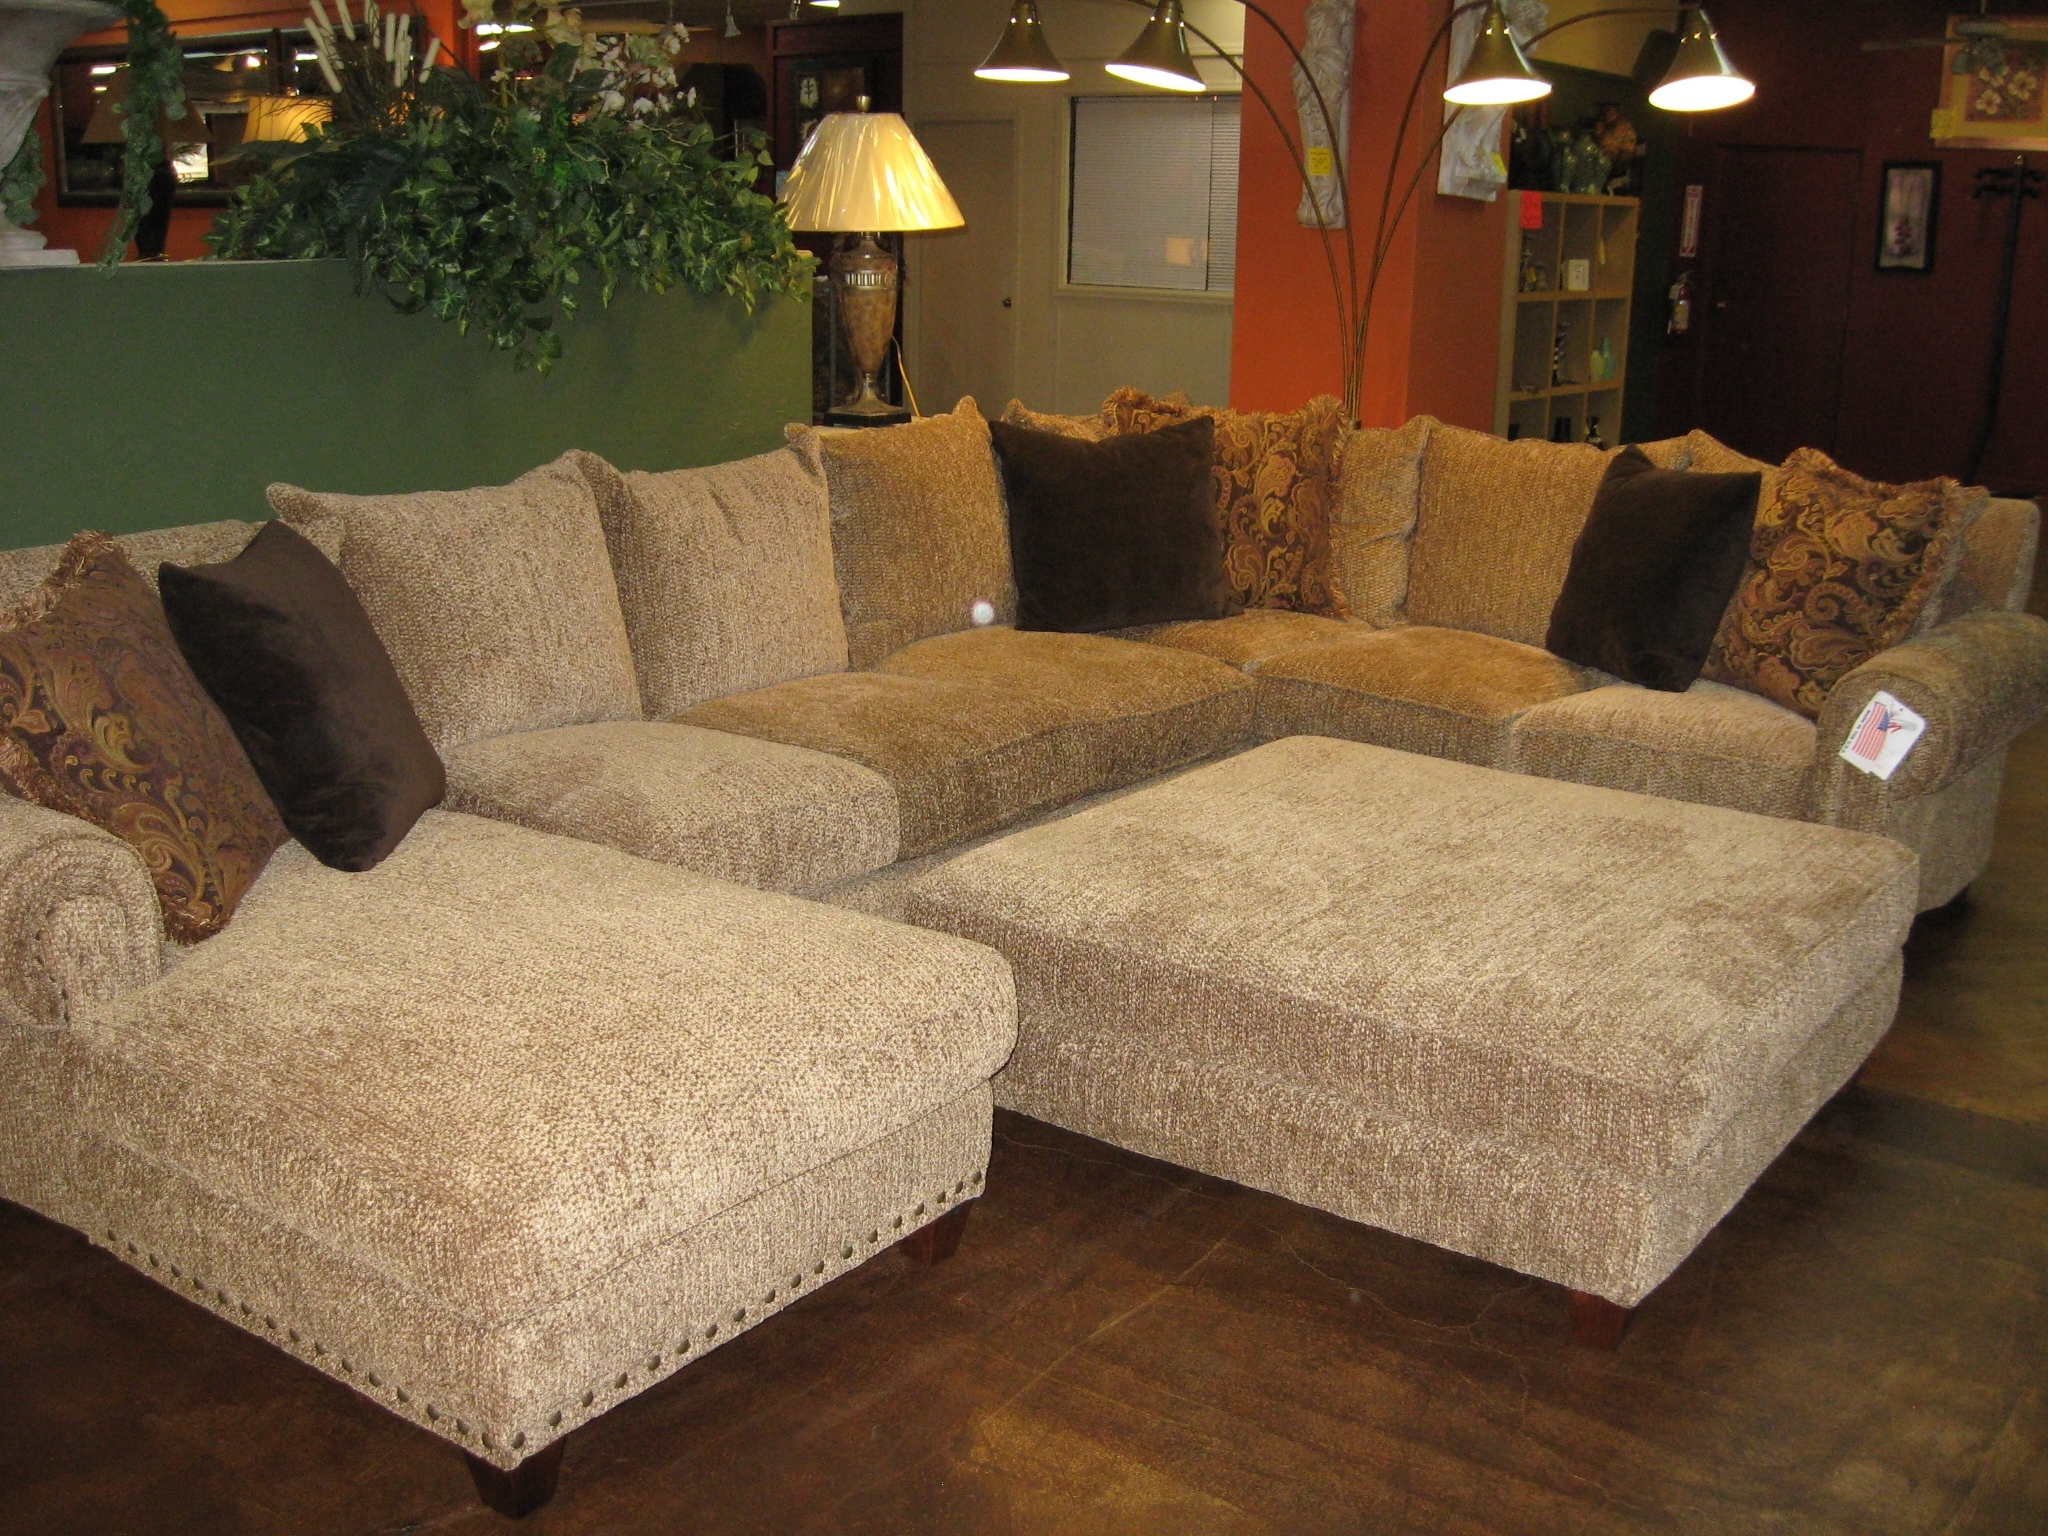 Sectional Sofa With Chaise And Ottoman – Hotelsbacau Throughout Sectionals With Chaise And Ottoman (View 12 of 15)